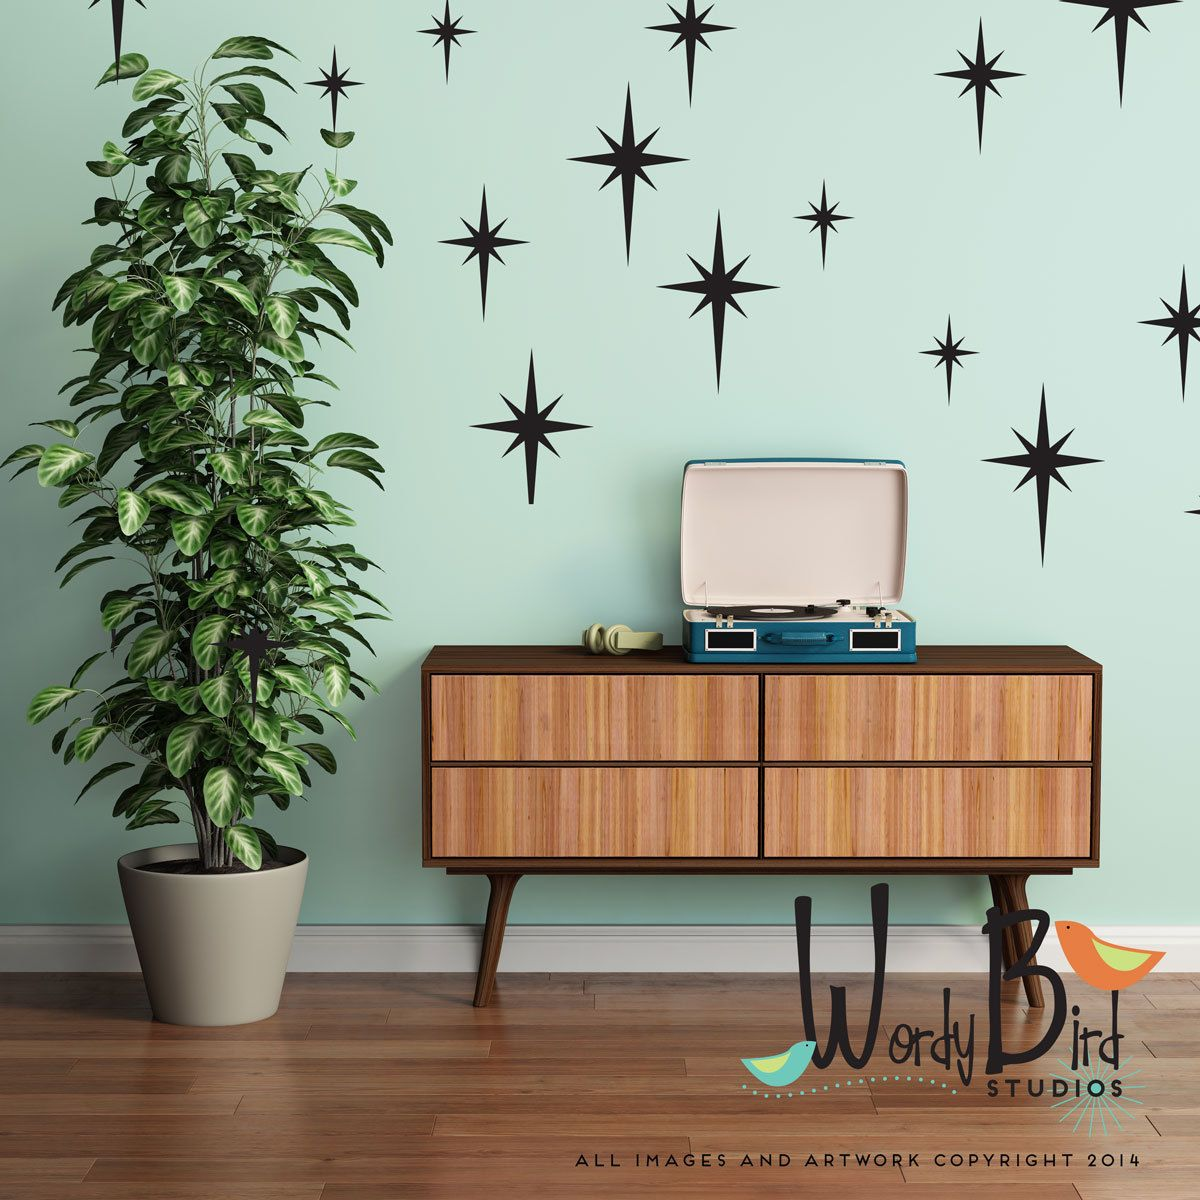 to paint home ideas decor bedroom charter wall silver a how with starburst